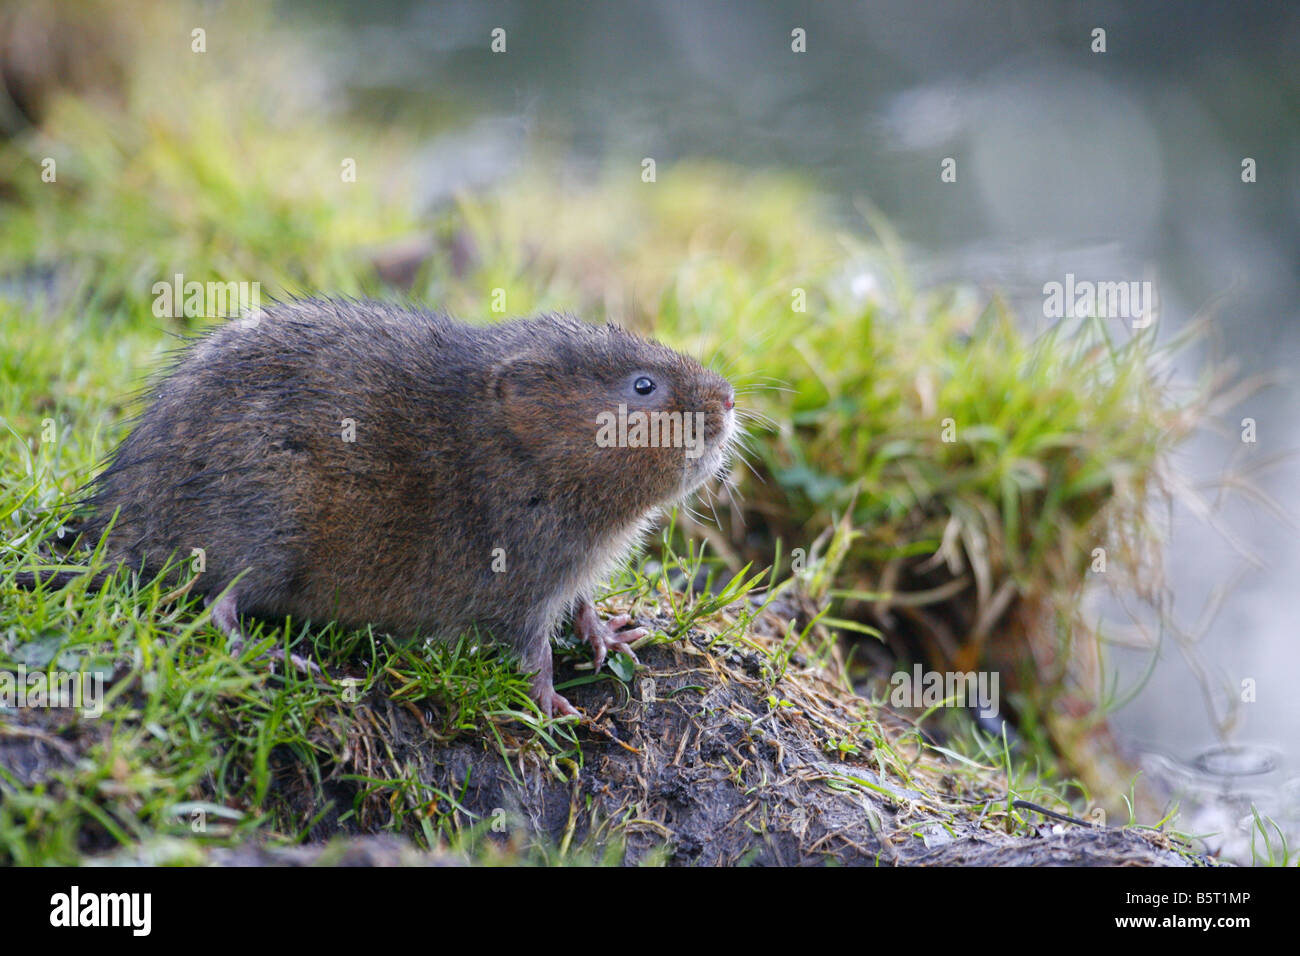 Water Vole Arvicola terrestris single adult sitting on river bank Taken February West Sussex UK - Stock Image